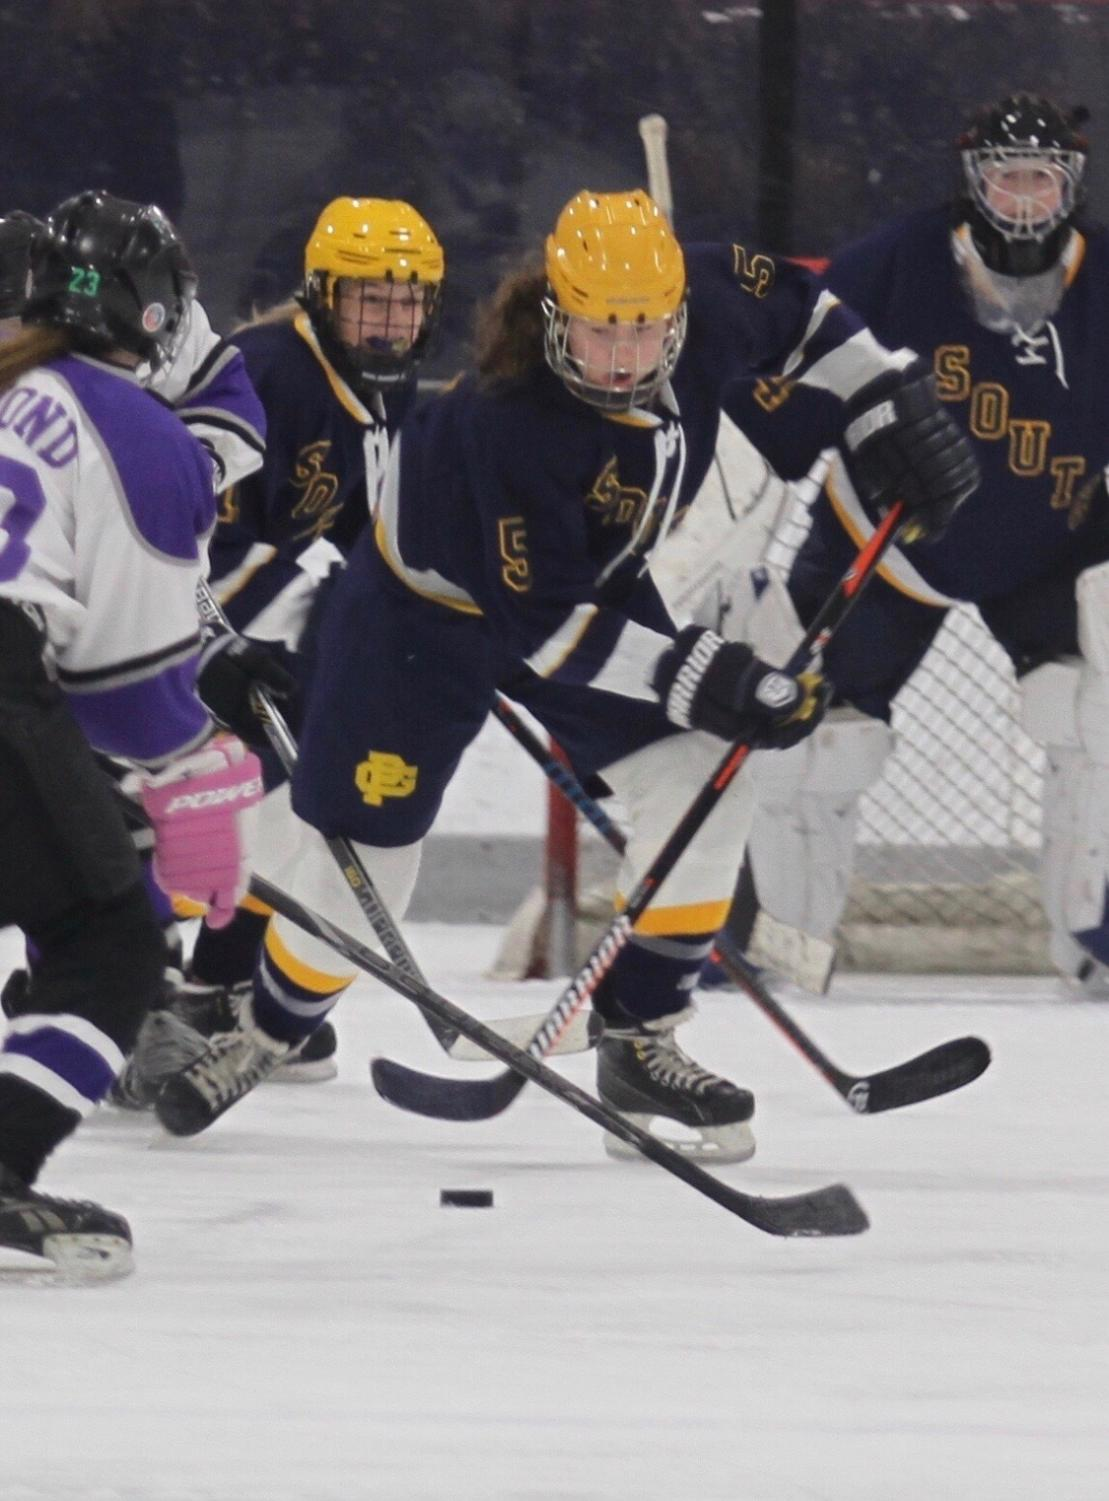 Tory Roth '22 breaks the puck out of her zone during a recent hockey game. Photo Courtesy of Roth.